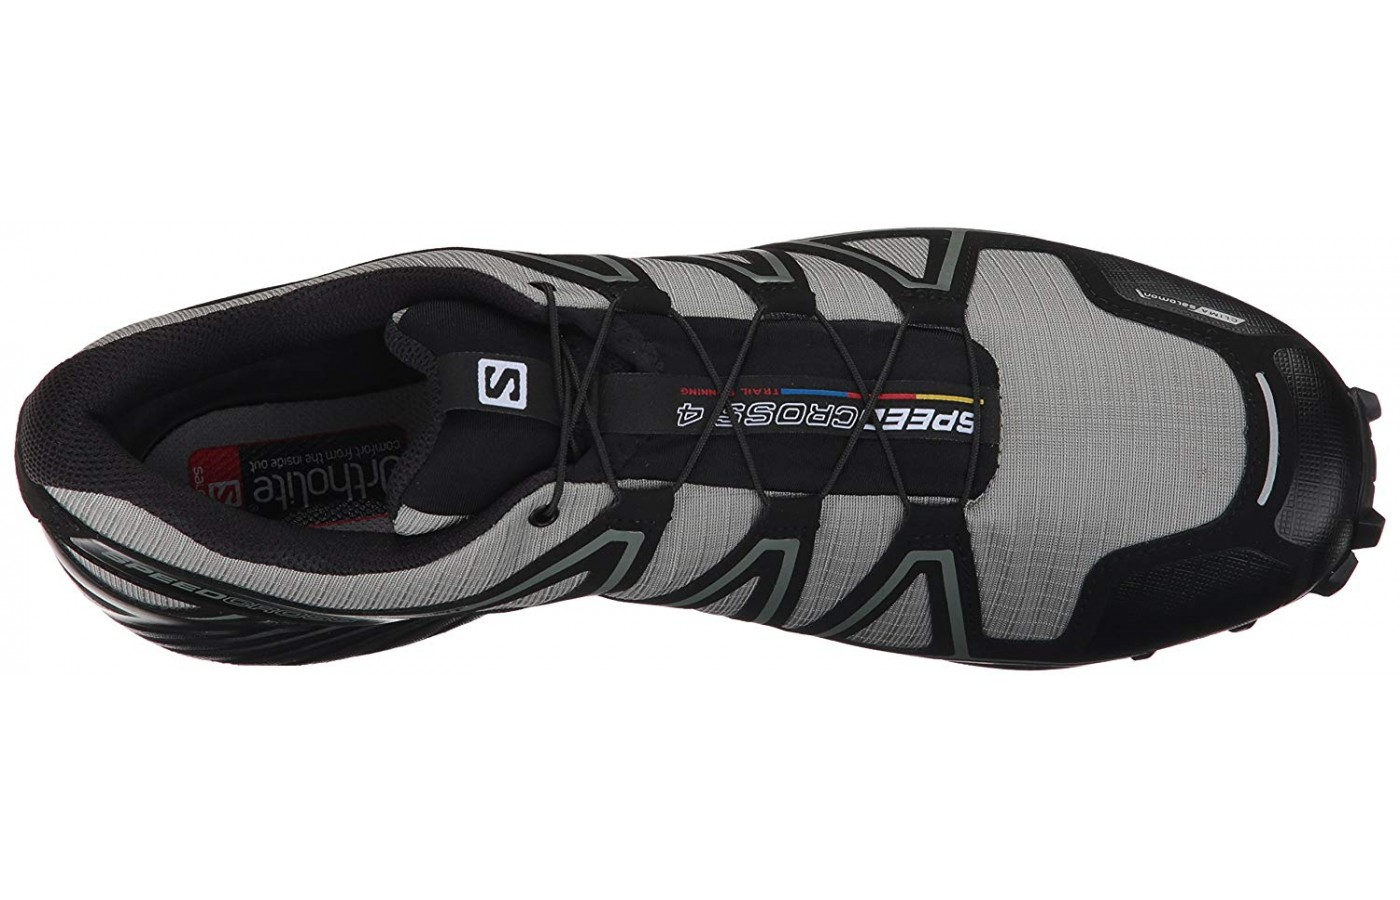 The Salon Speedcross 4 has a quick lace system